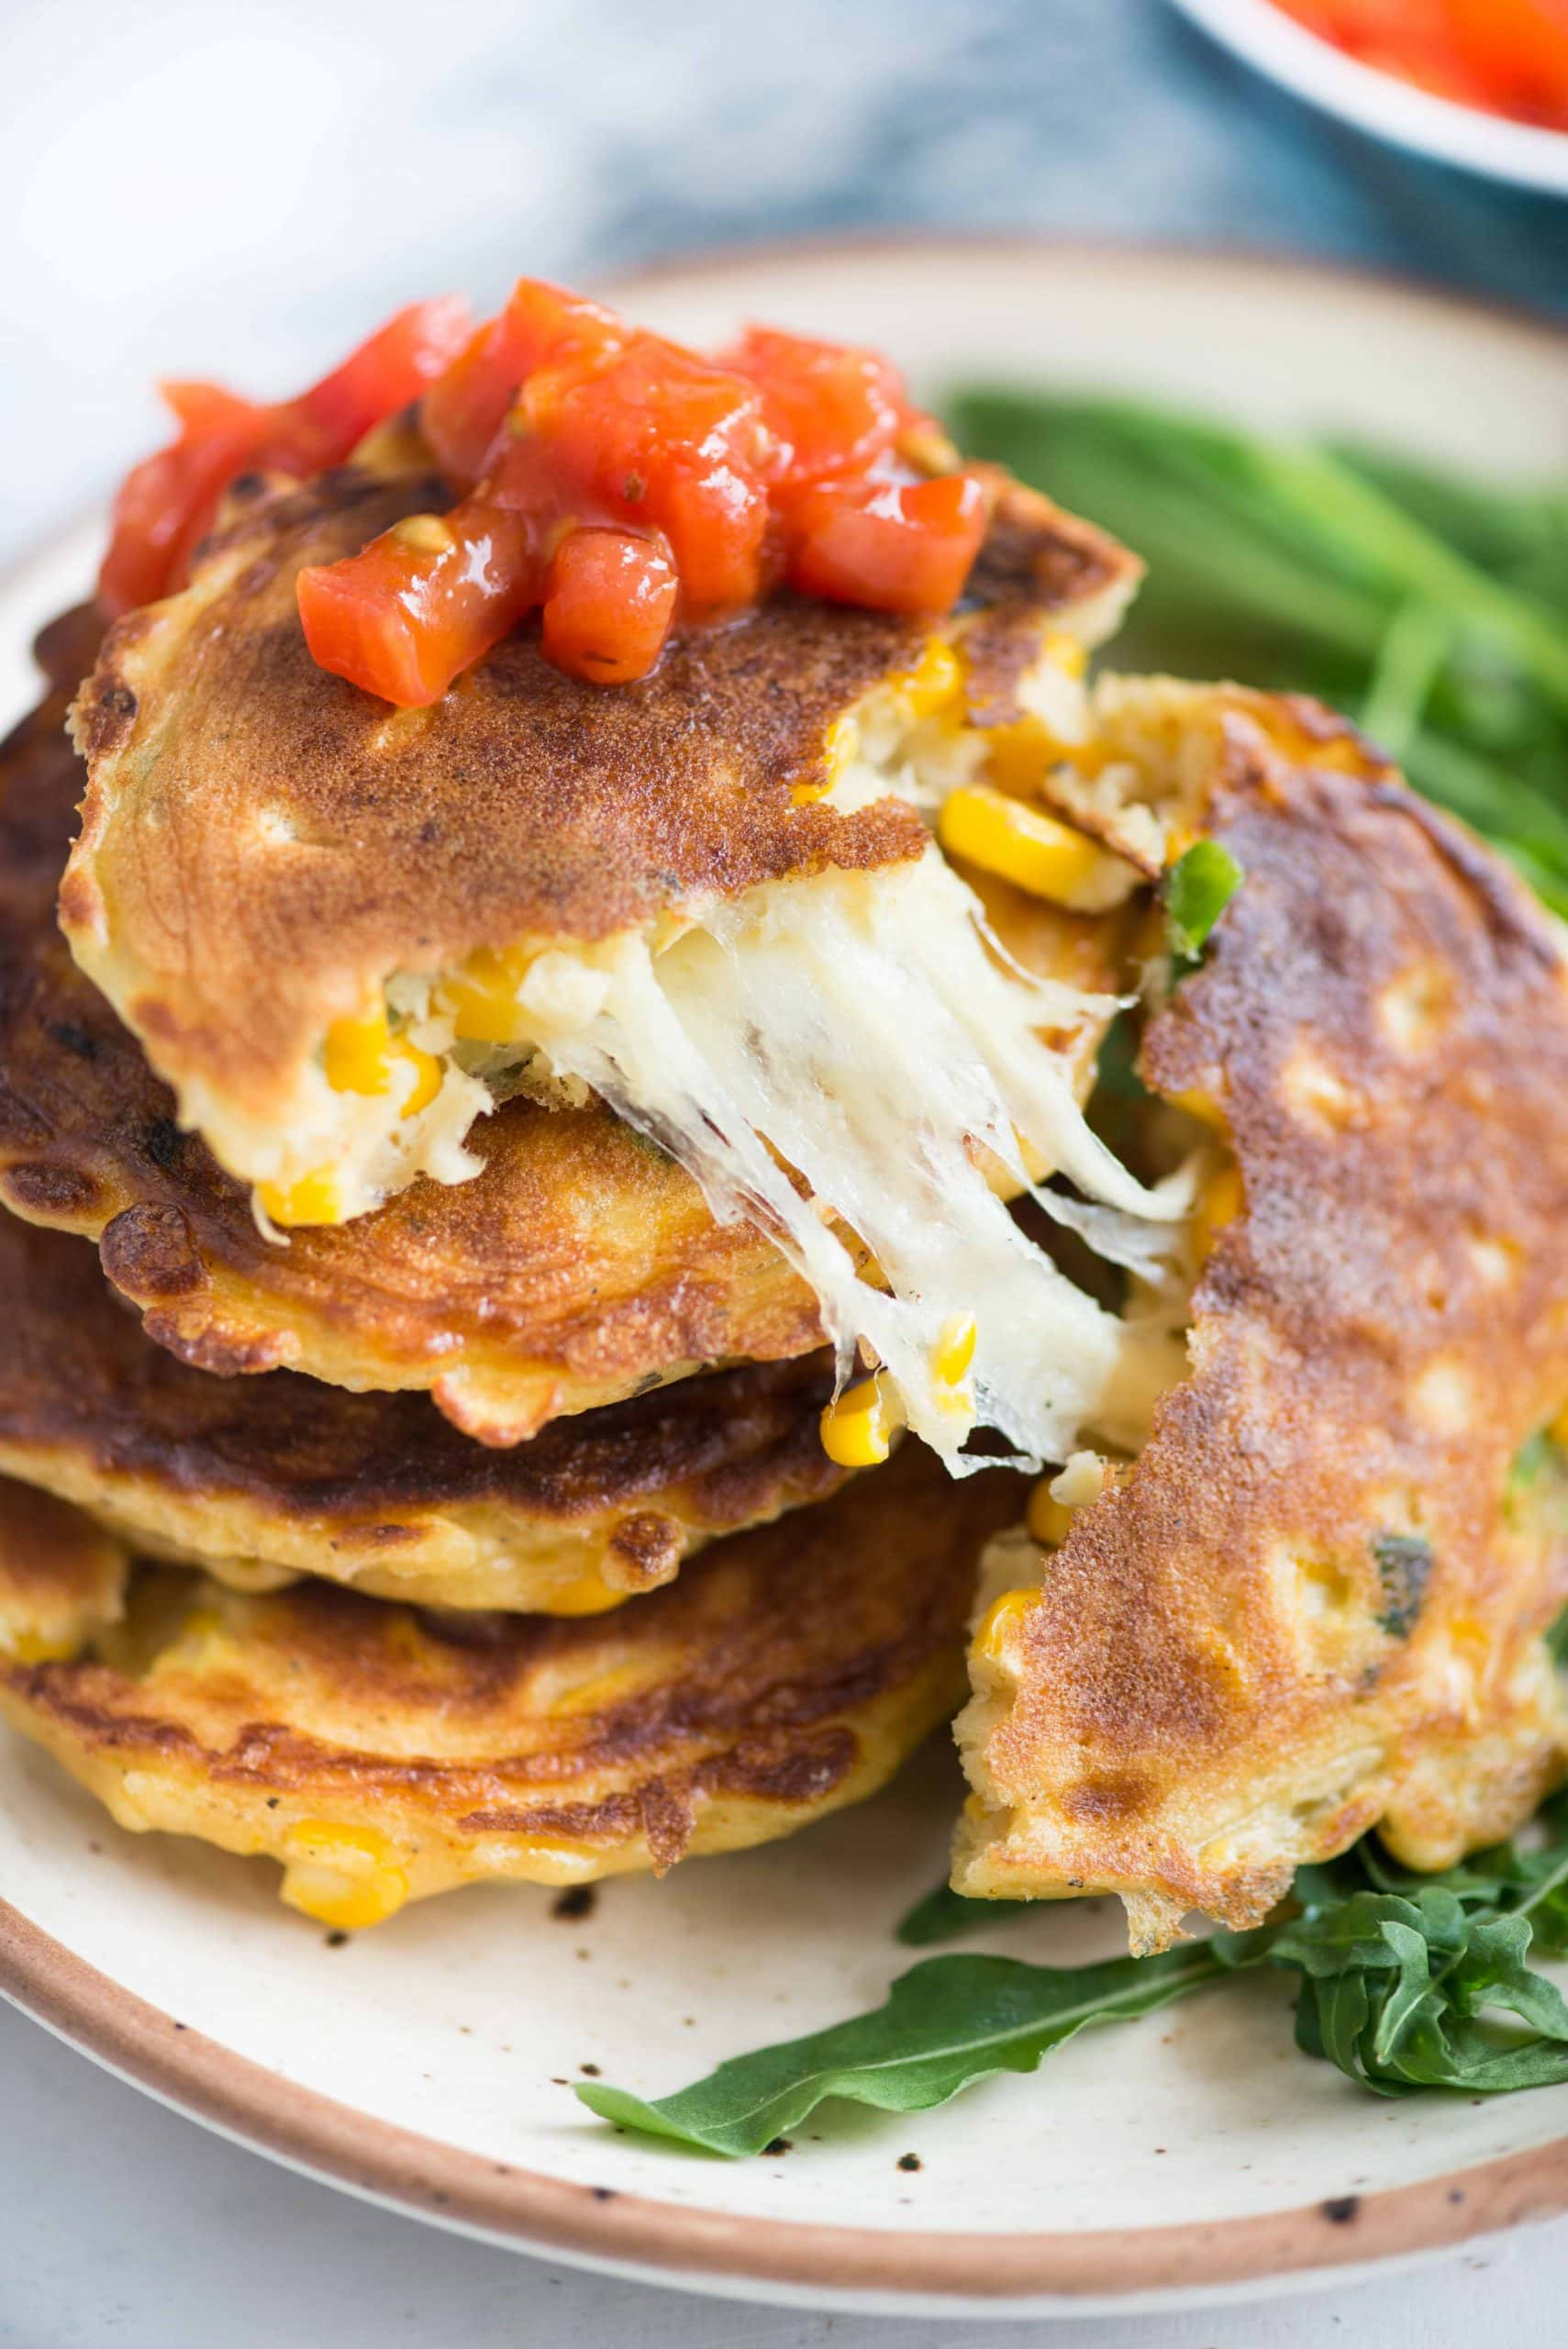 These crispy Corn Fritters are loaded with fresh summer corn, jalapenos, green onions have a gooey cheesy surprise in the middle. These delicious can be served as snacks or as a side dish along with your favorite dips on the side.